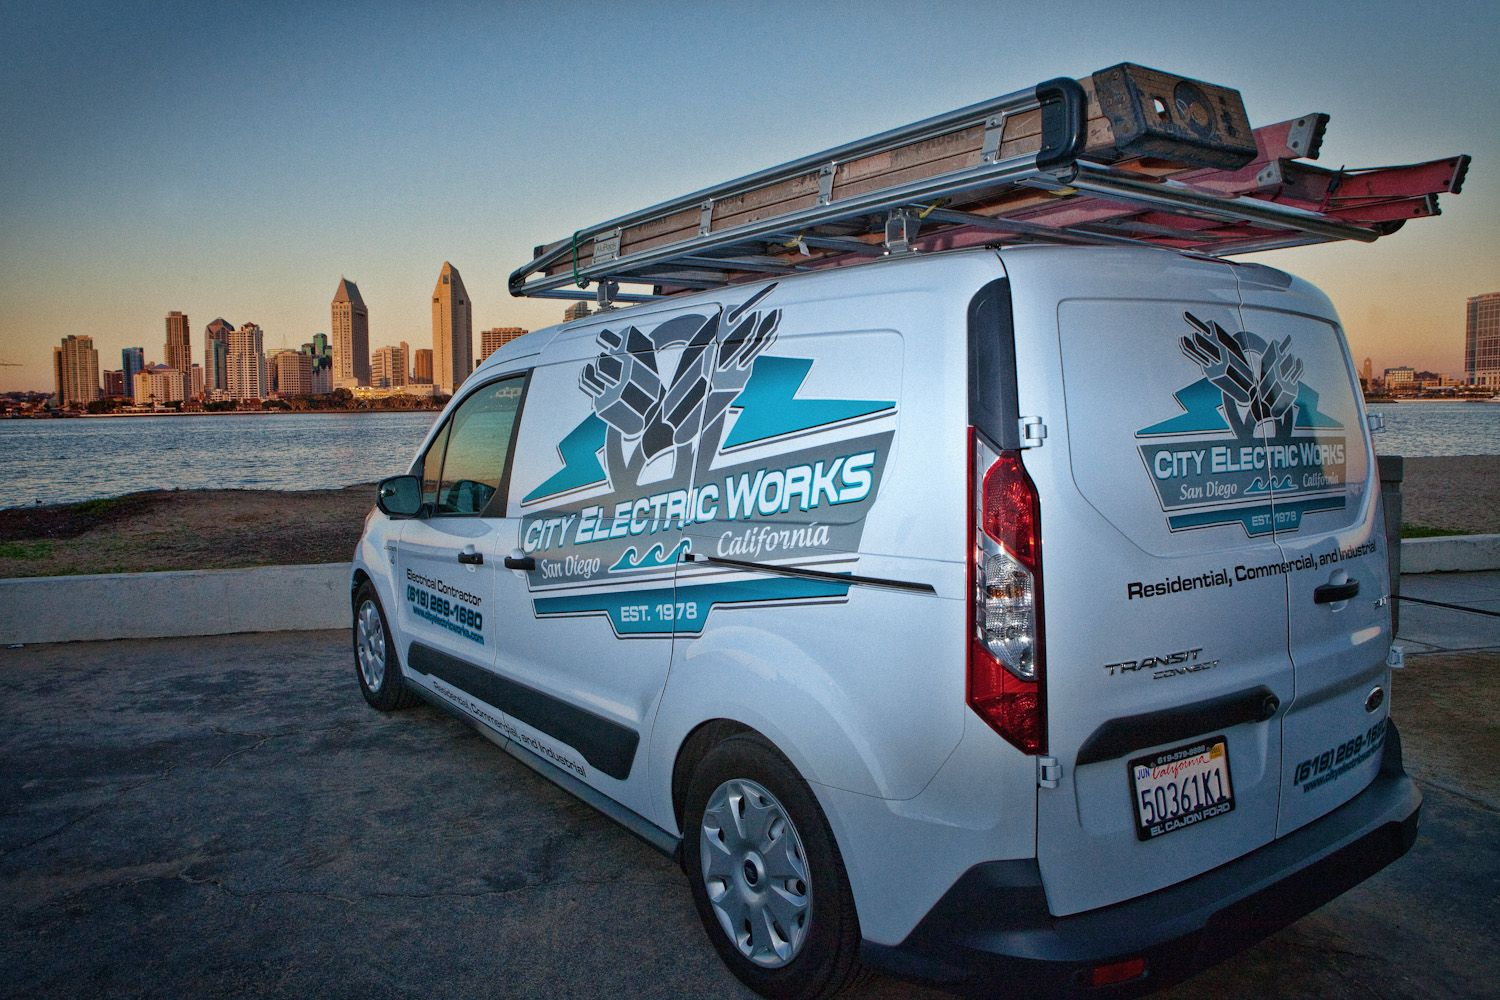 City Electric Works: Commercial Electrical Contractor in San Diego ...